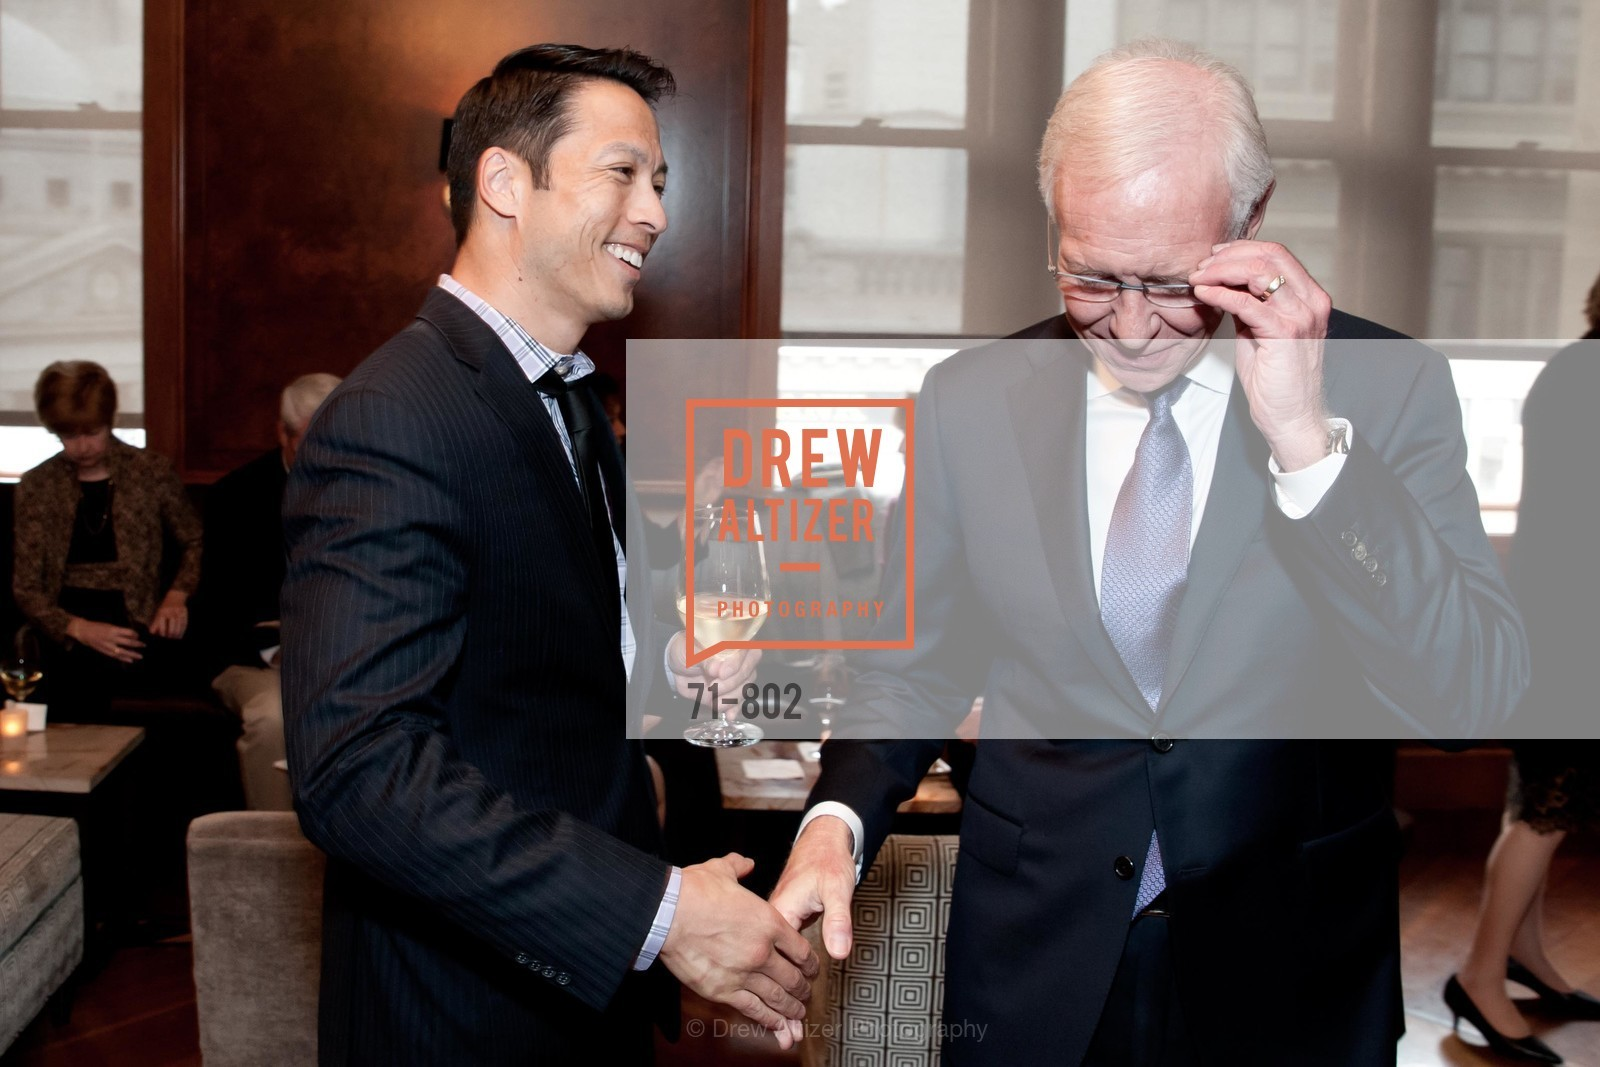 Ryan Lee, Sully Sullenberger, MR PORTER Celebrate The San Francisco Issue of The Journal, US, April 24th, 2015,Drew Altizer, Drew Altizer Photography, full-service agency, private events, San Francisco photographer, photographer california